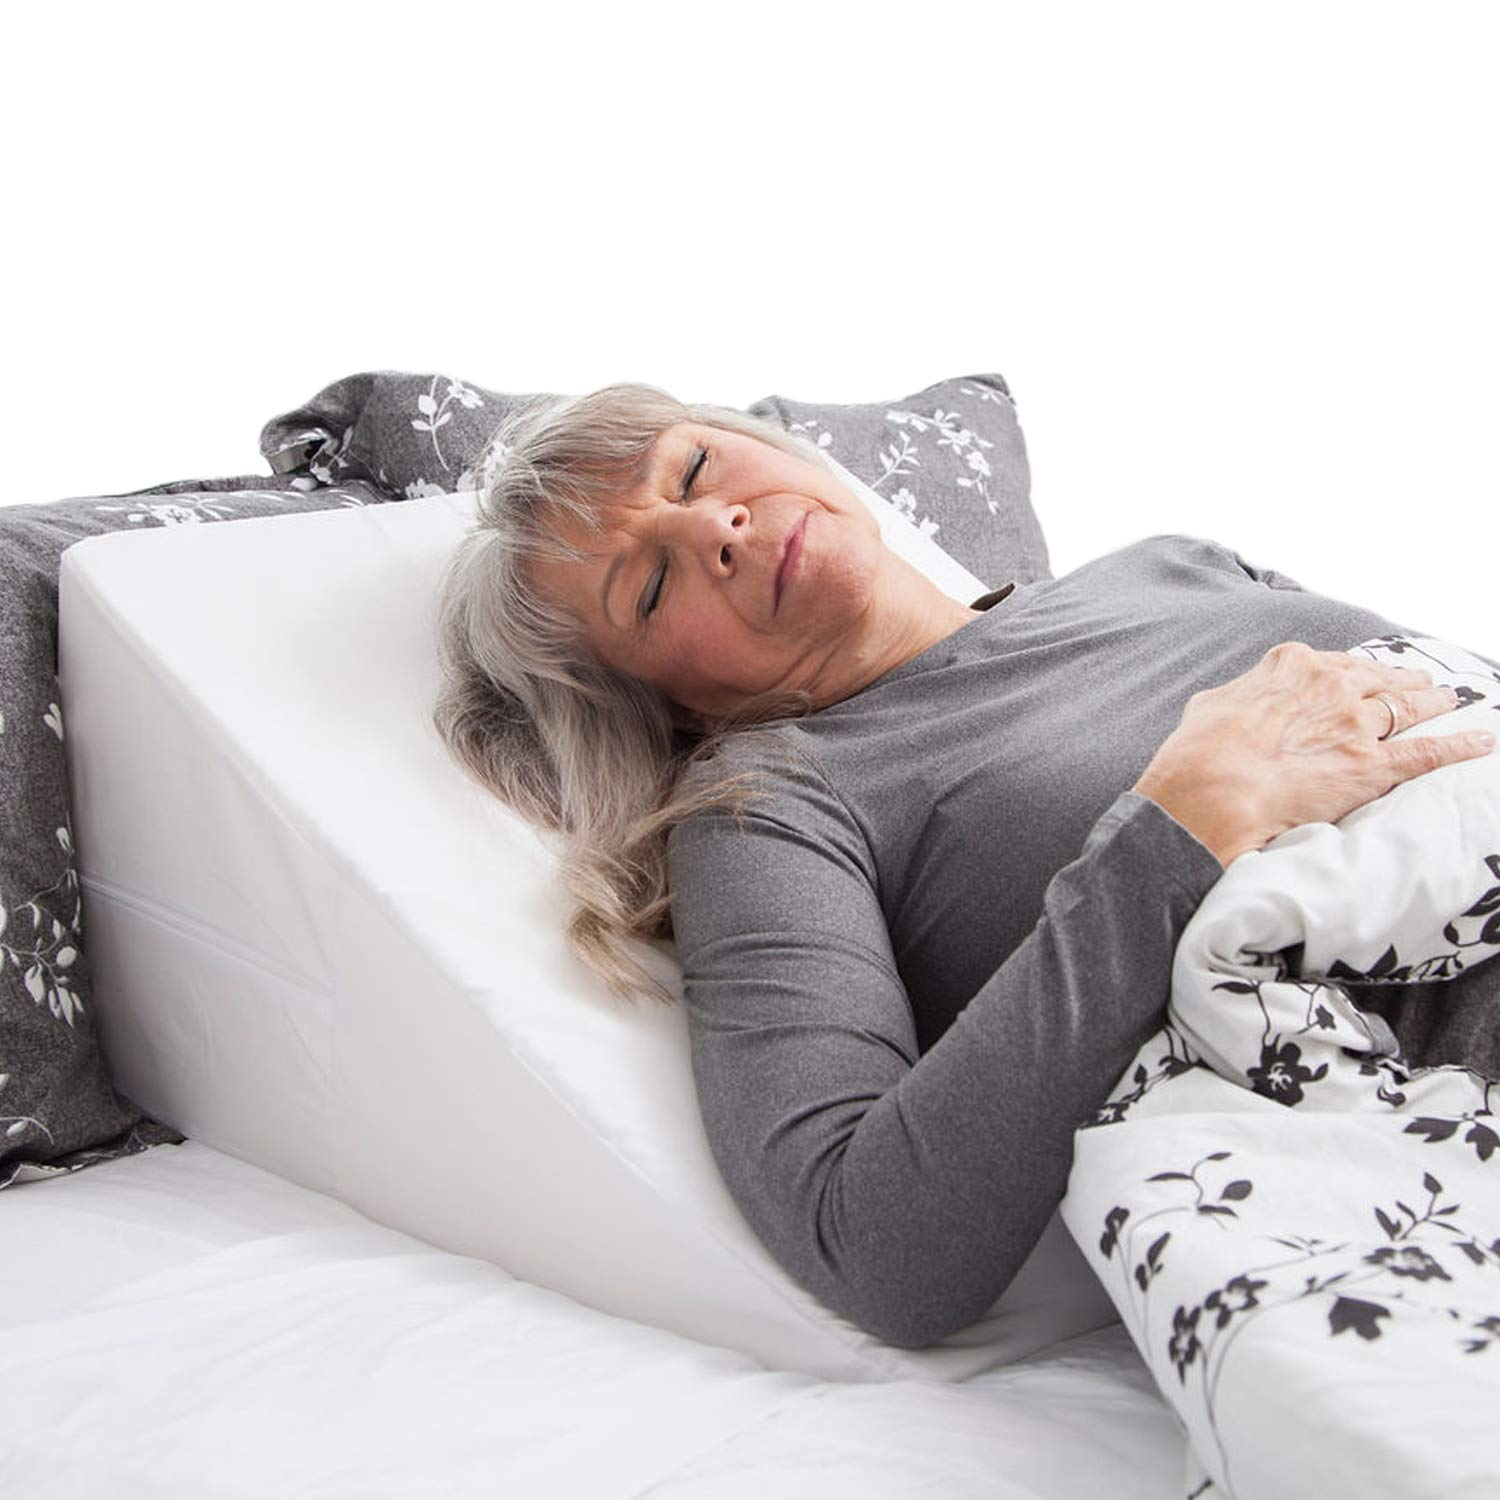 DMI Wedge Pillow to Support and Elevate Neck, Head and Back for Acid Reflux